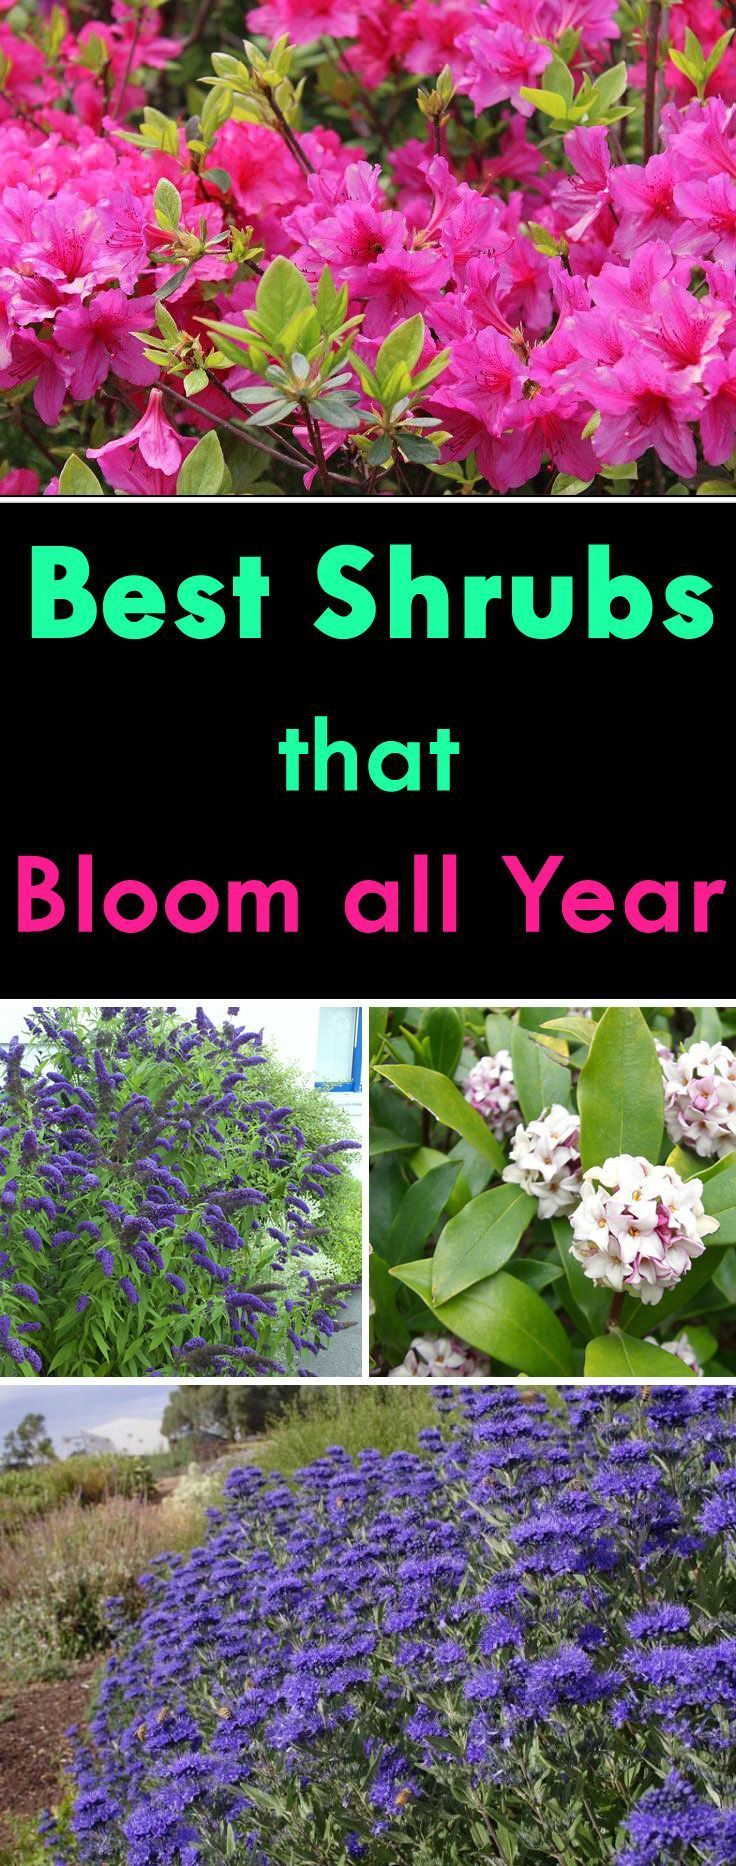 Flower bushes that bloom in winter - Best Shrubs That Bloom All Year